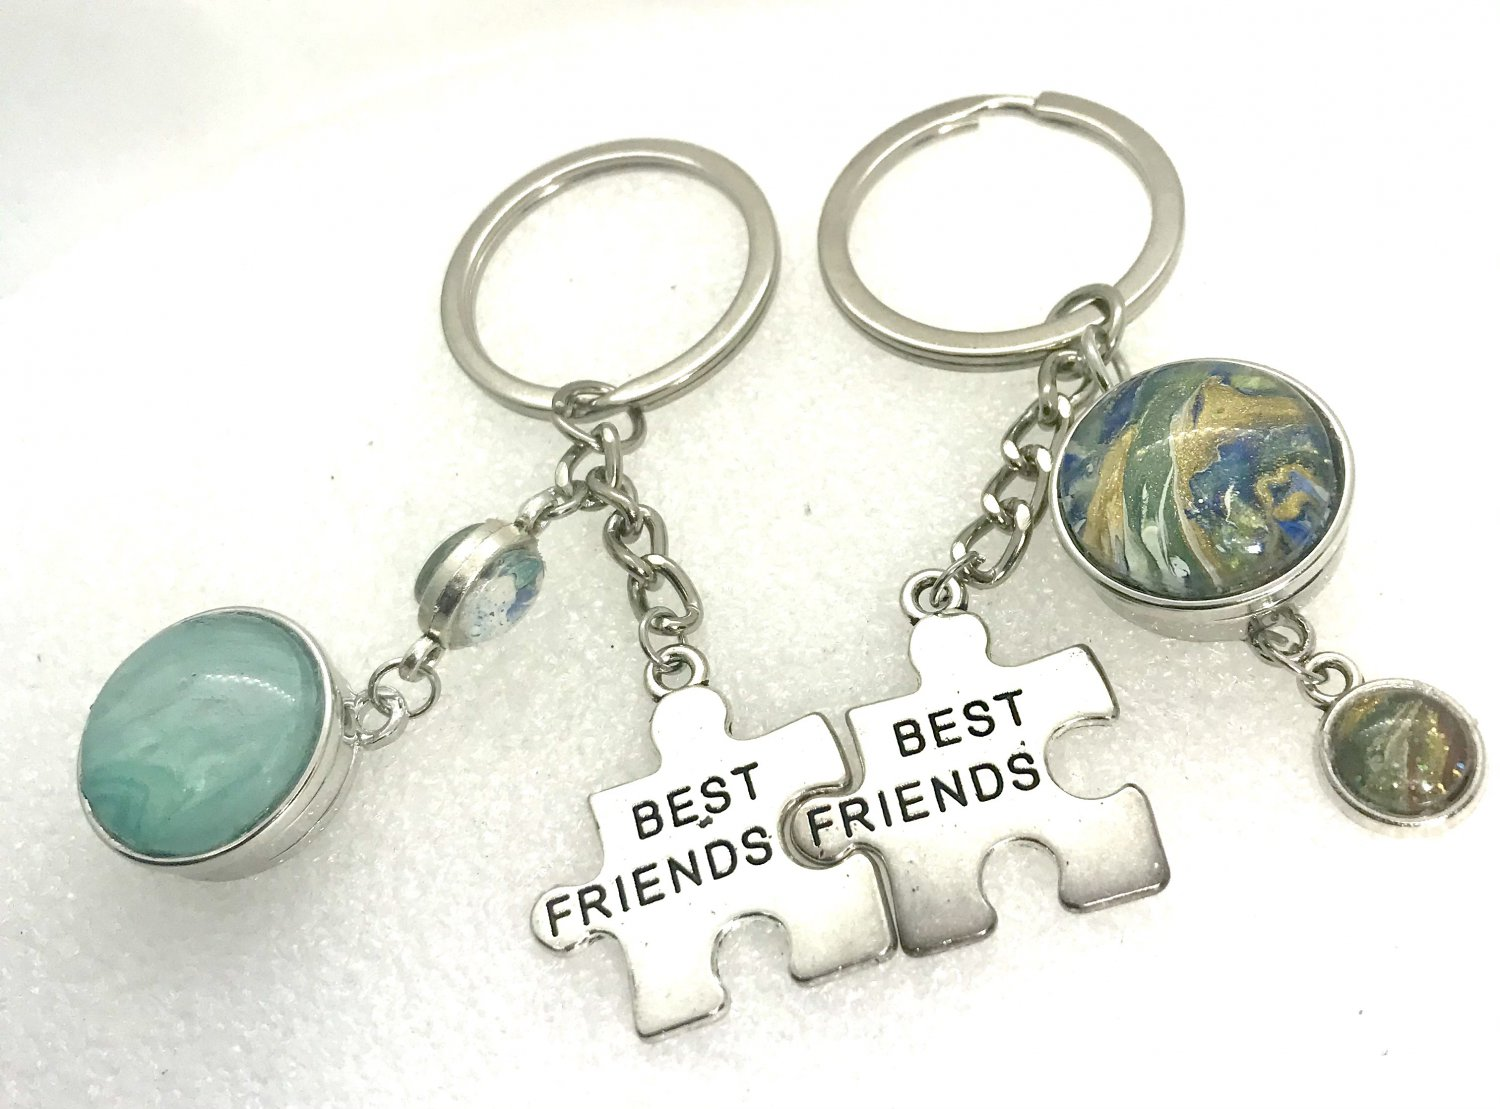 Handmade pair of Keychains Best Friends with charms and 20mm snaps